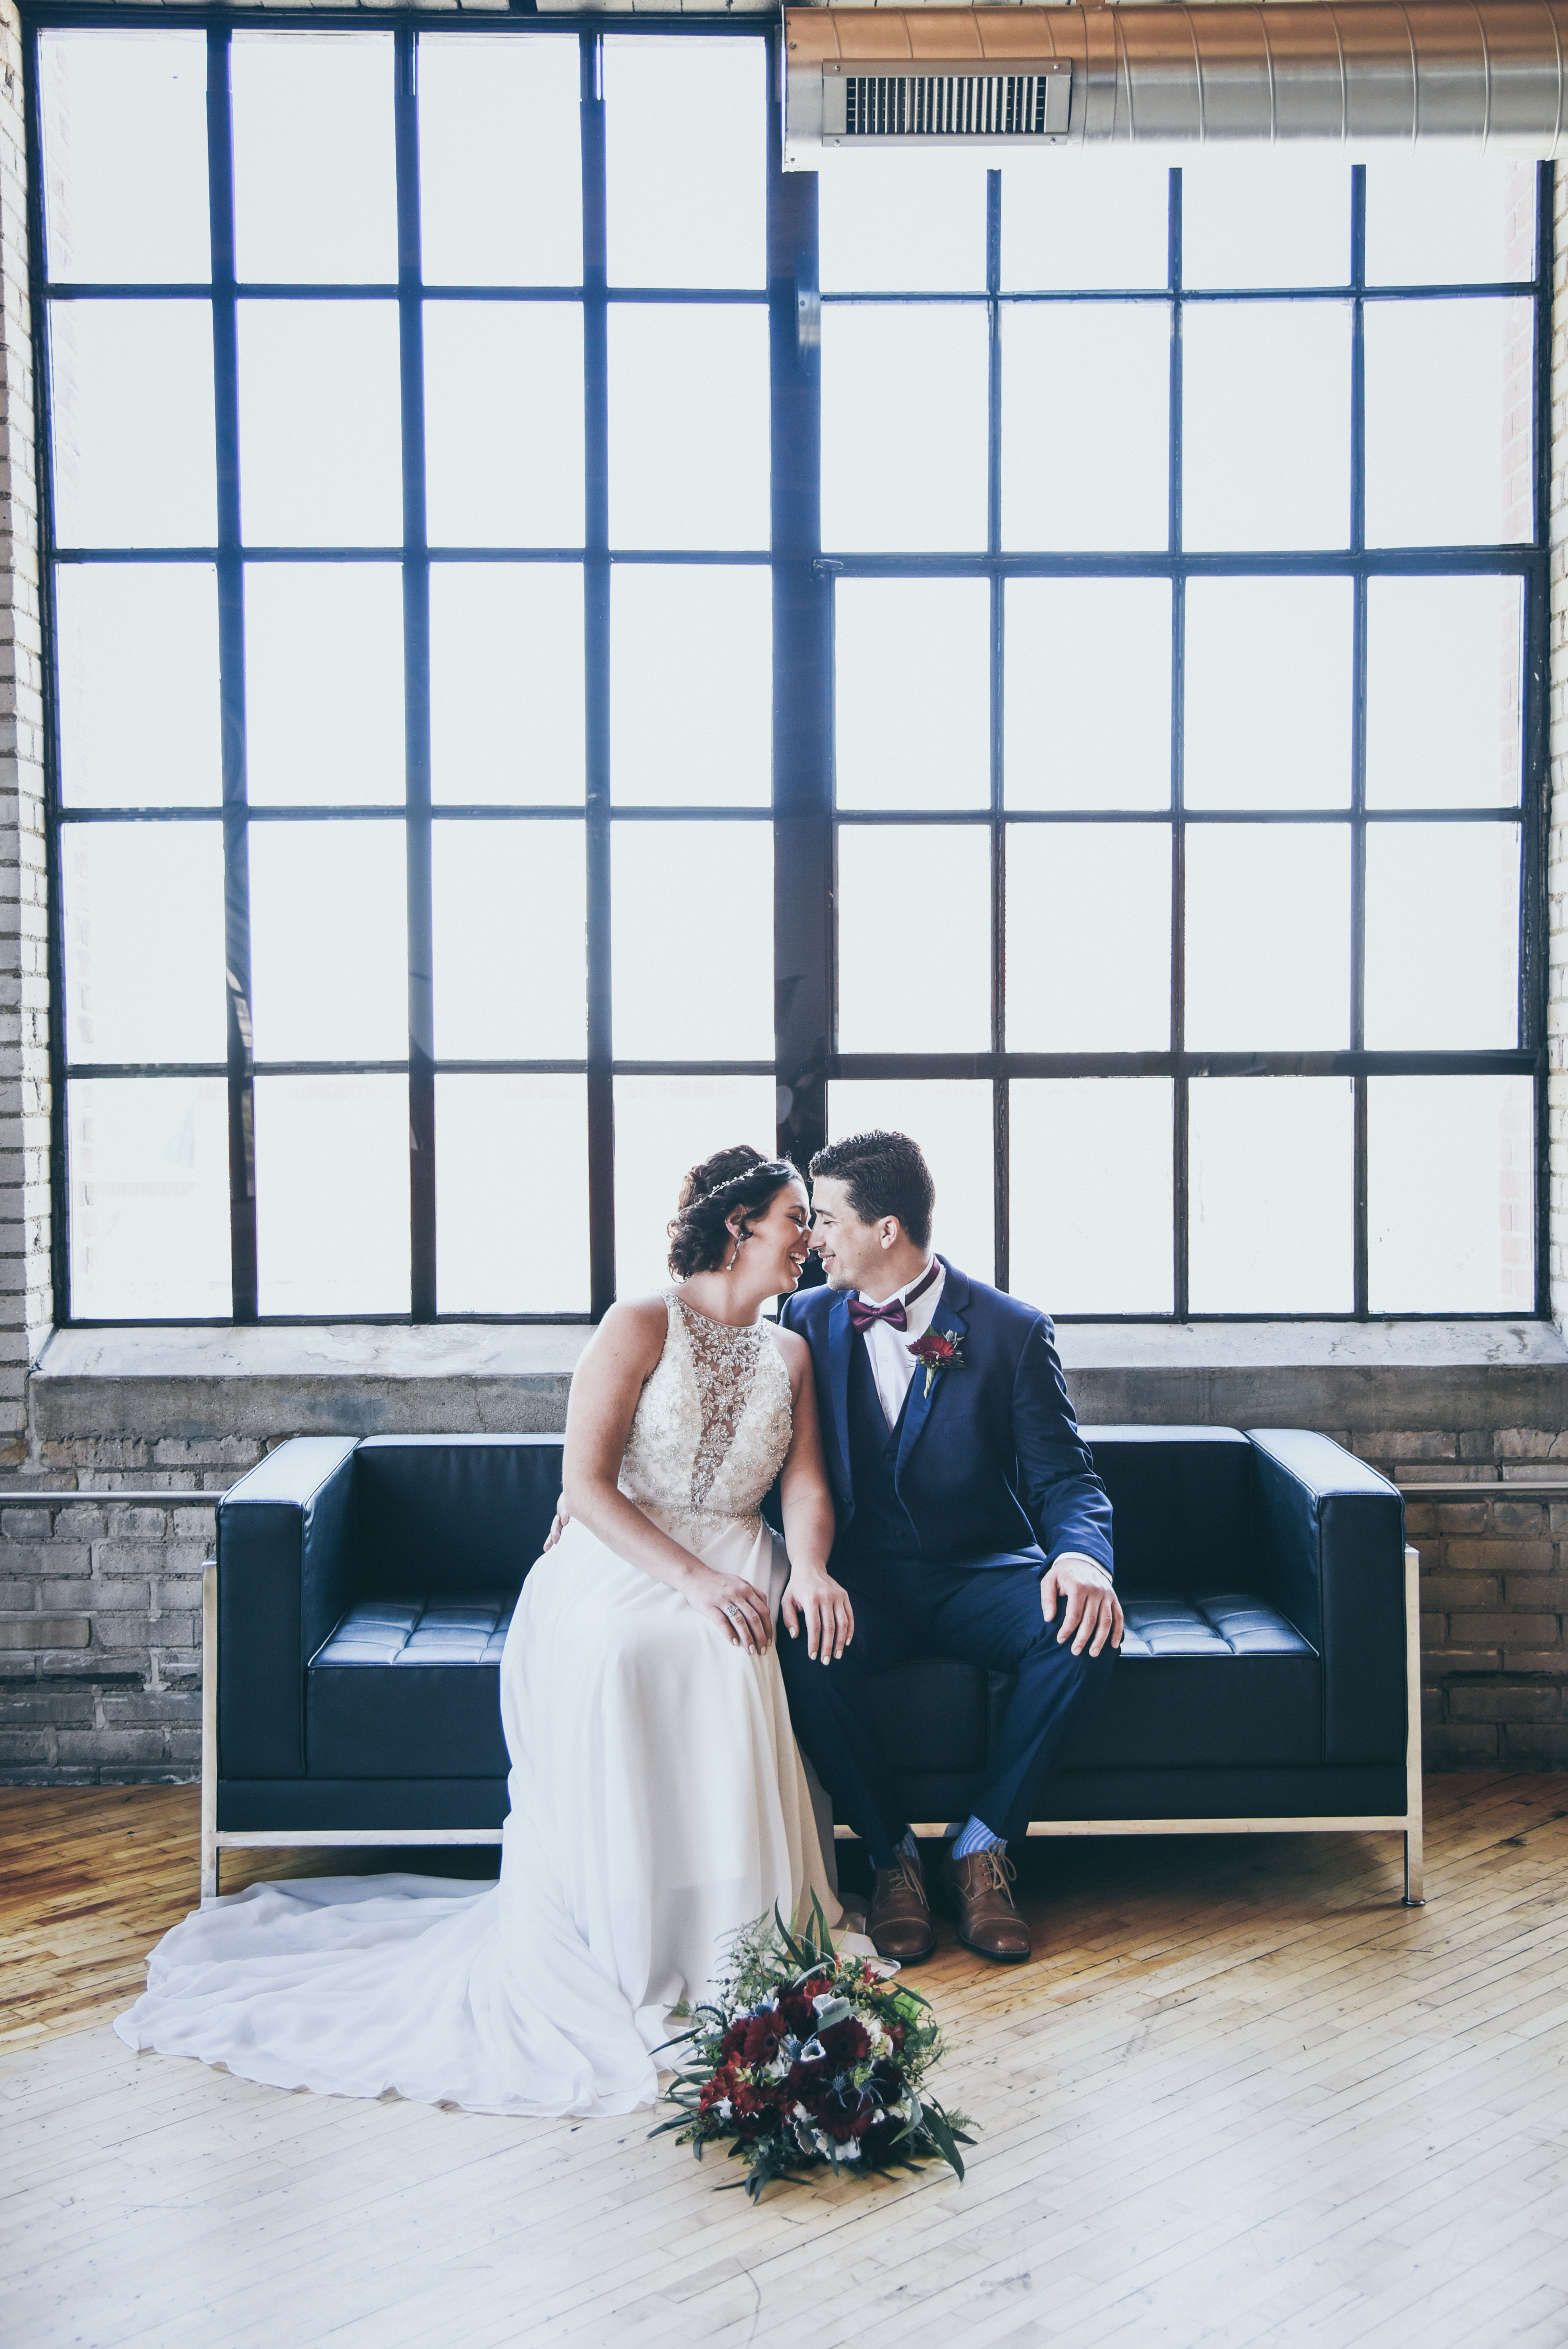 Bride and Groom together in an industrial loft venue on a black couch